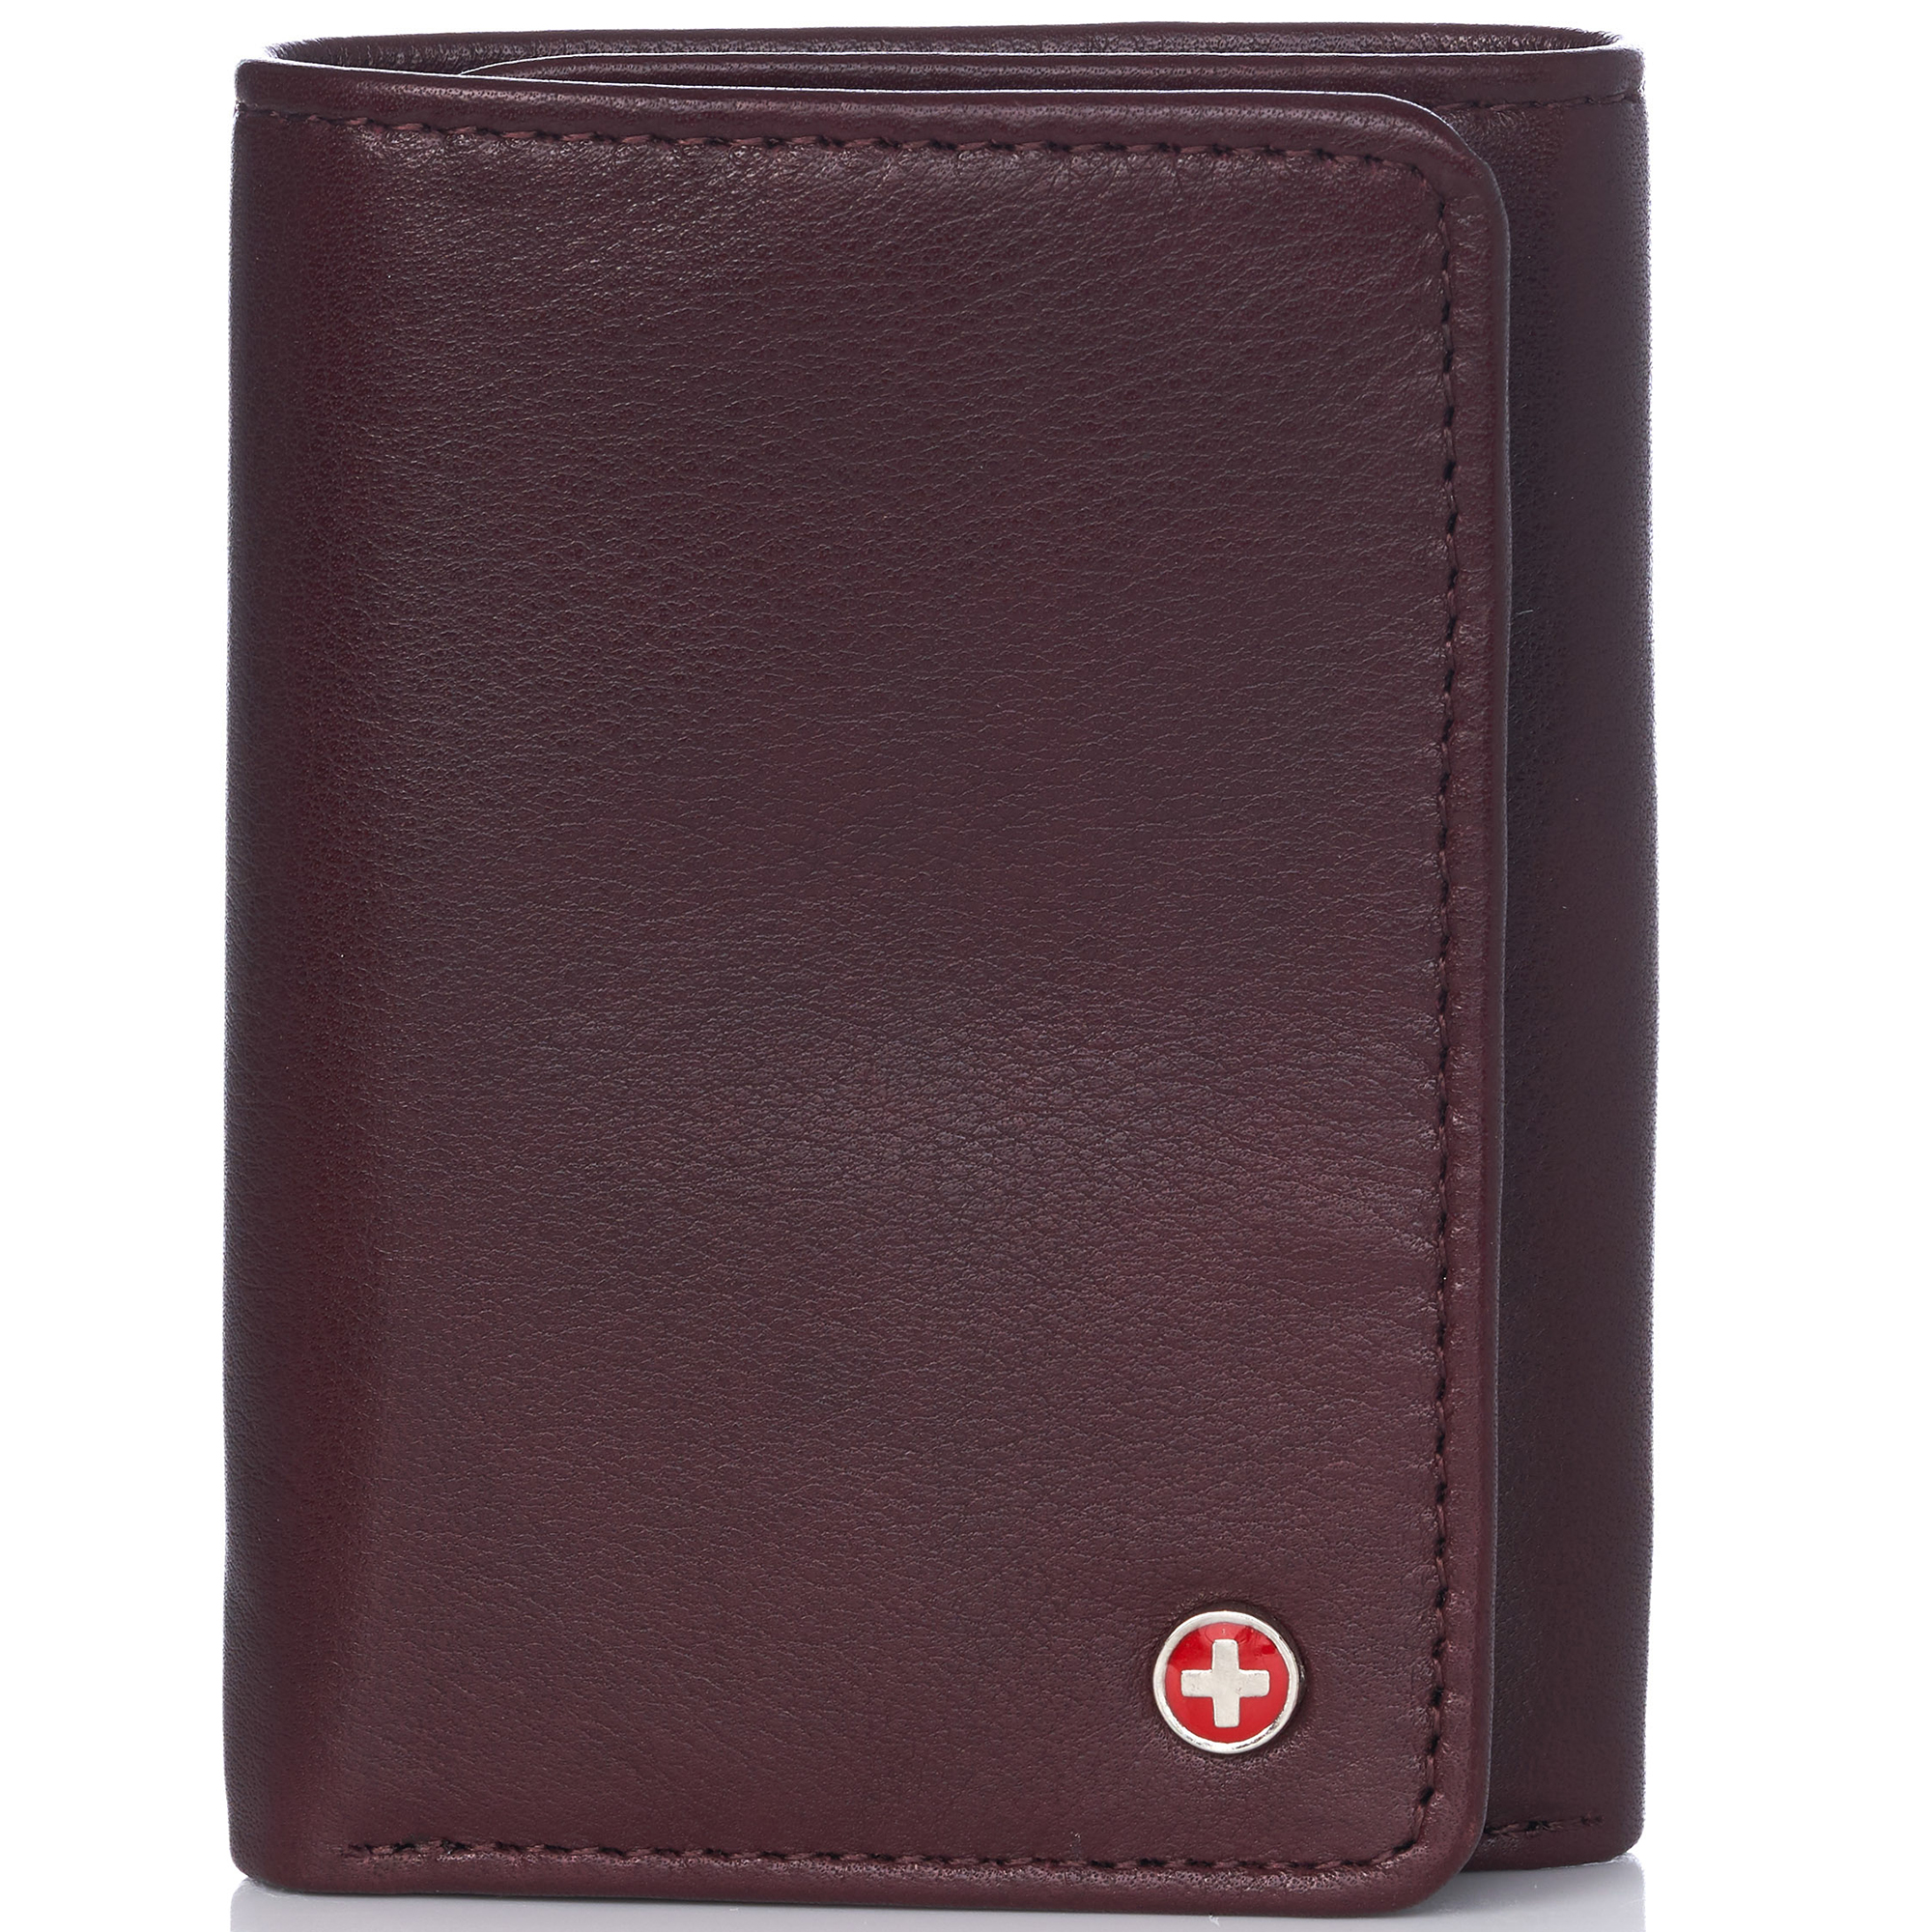 Alpine-Swiss-RFID-Mens-Wallet-Deluxe-Capacity-Trifold-With-Divided-Bill-Section thumbnail 100